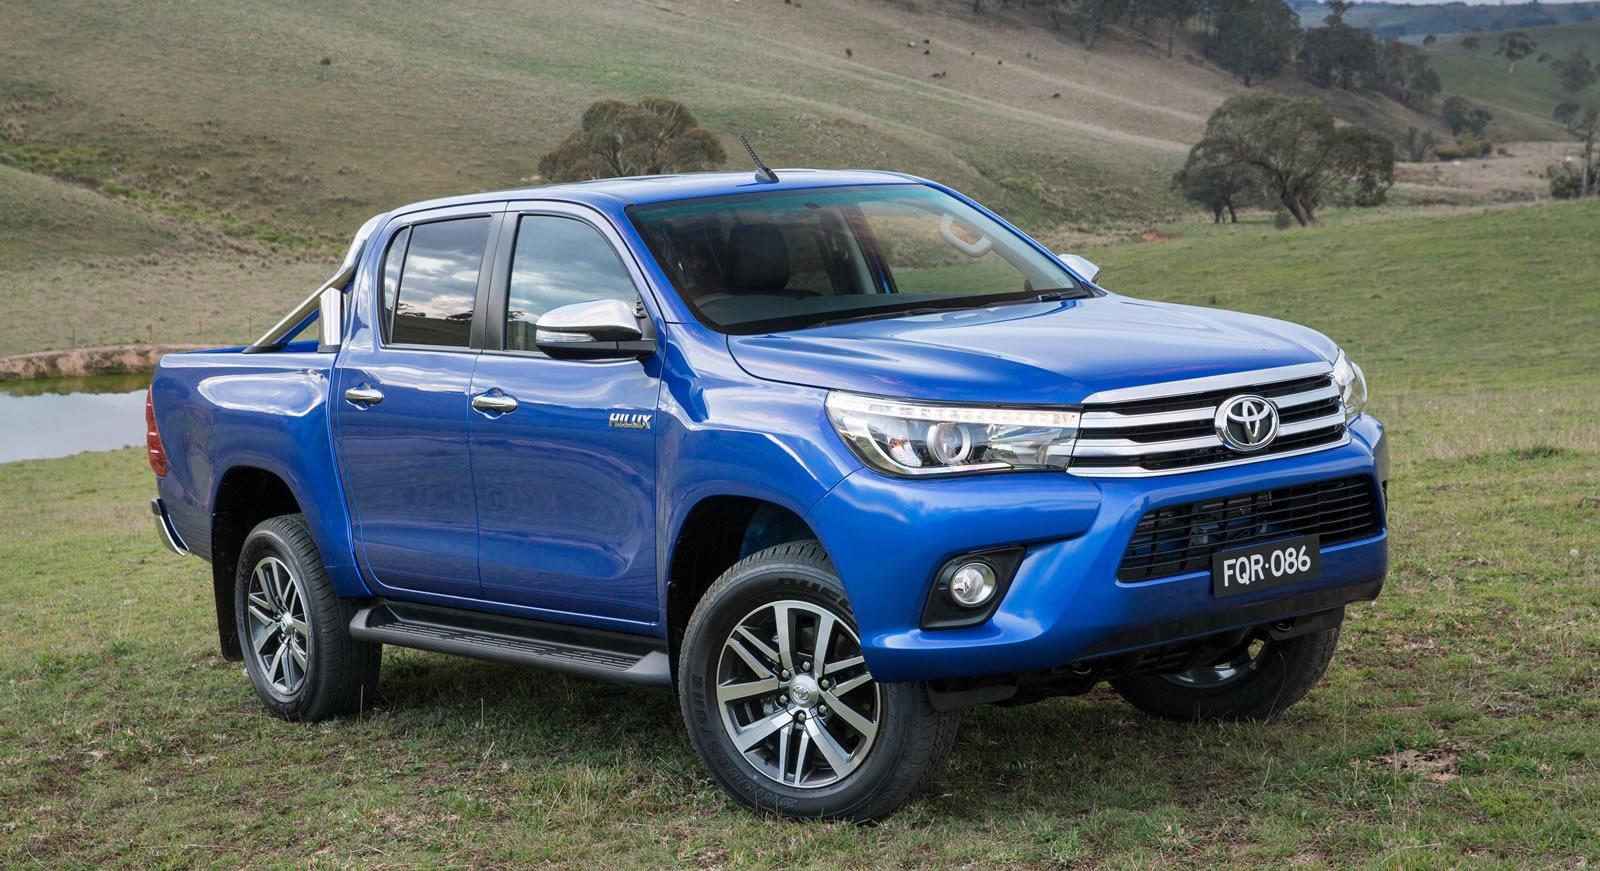 Toyota Hilux HD wallpapers, Desktop wallpaper - most viewed